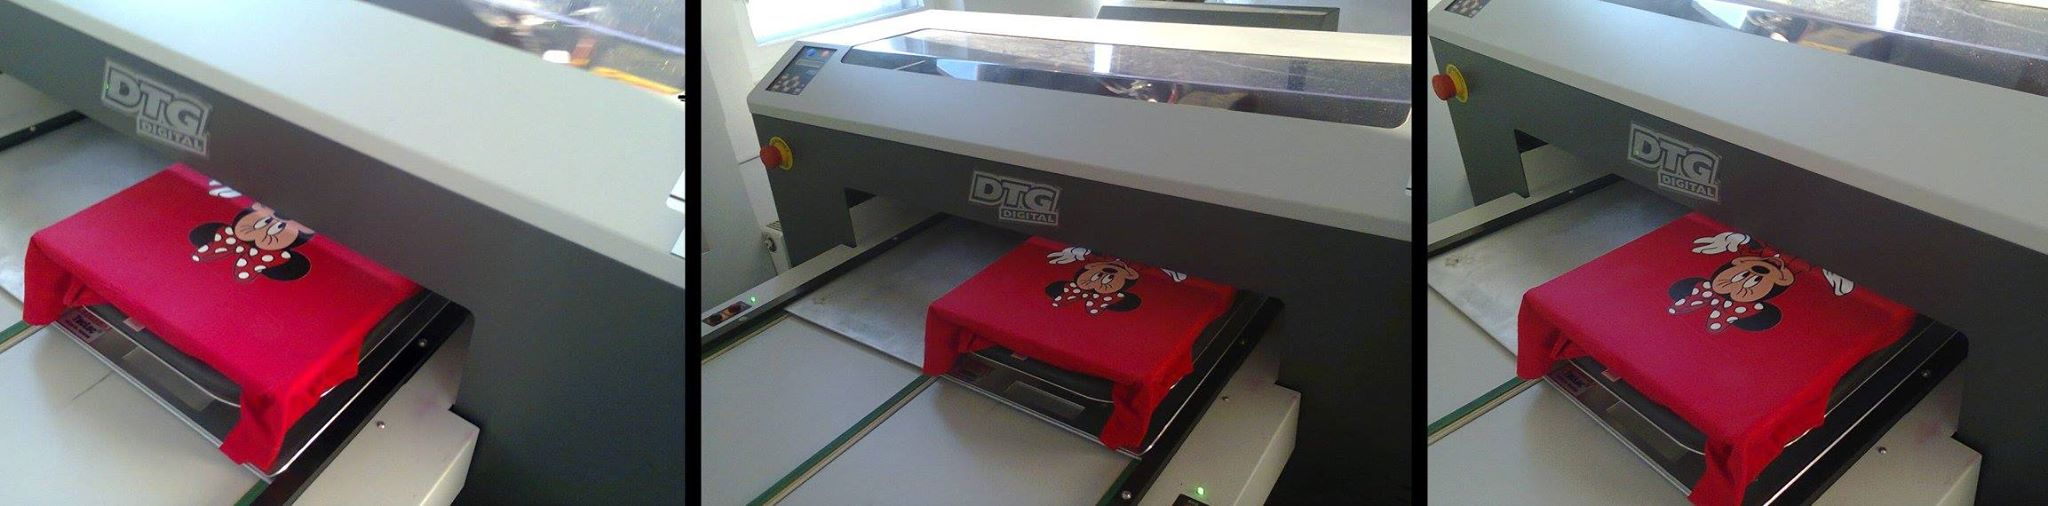 DTG Direct Printing Machine